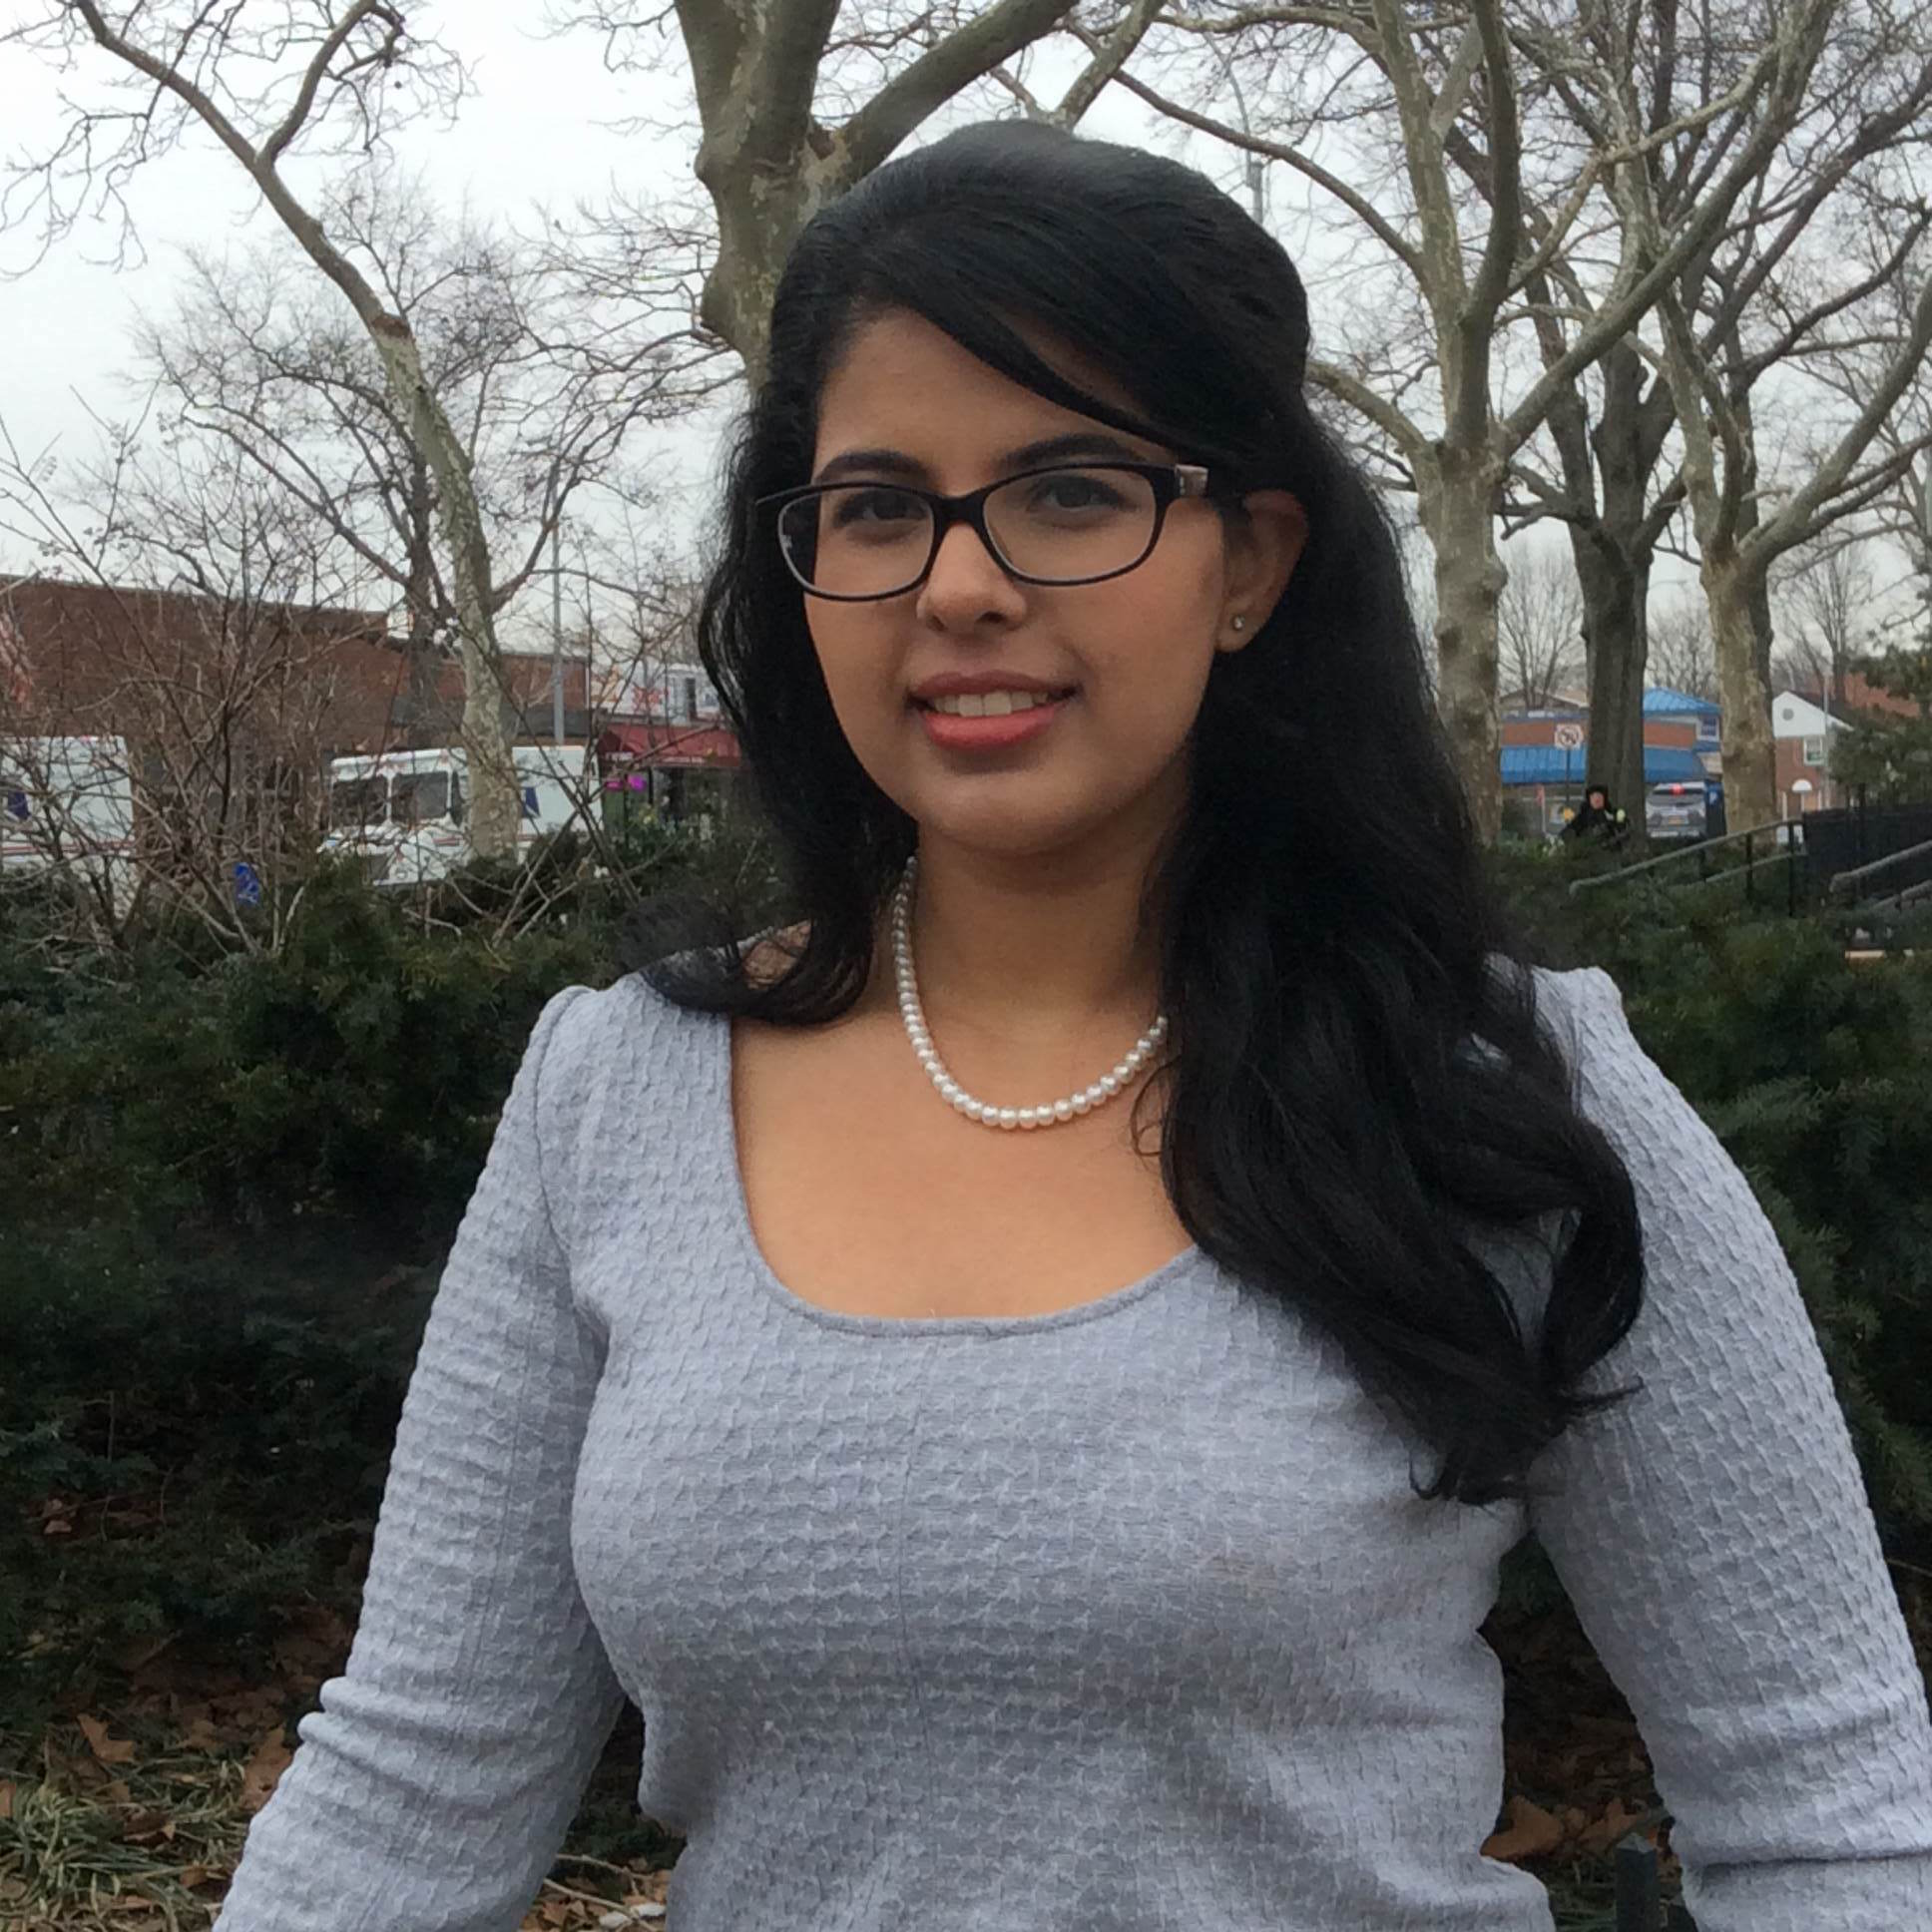 DPT '17 candidate Amarinder Parmar volunteered at Gallop NYC for her community service requirement.